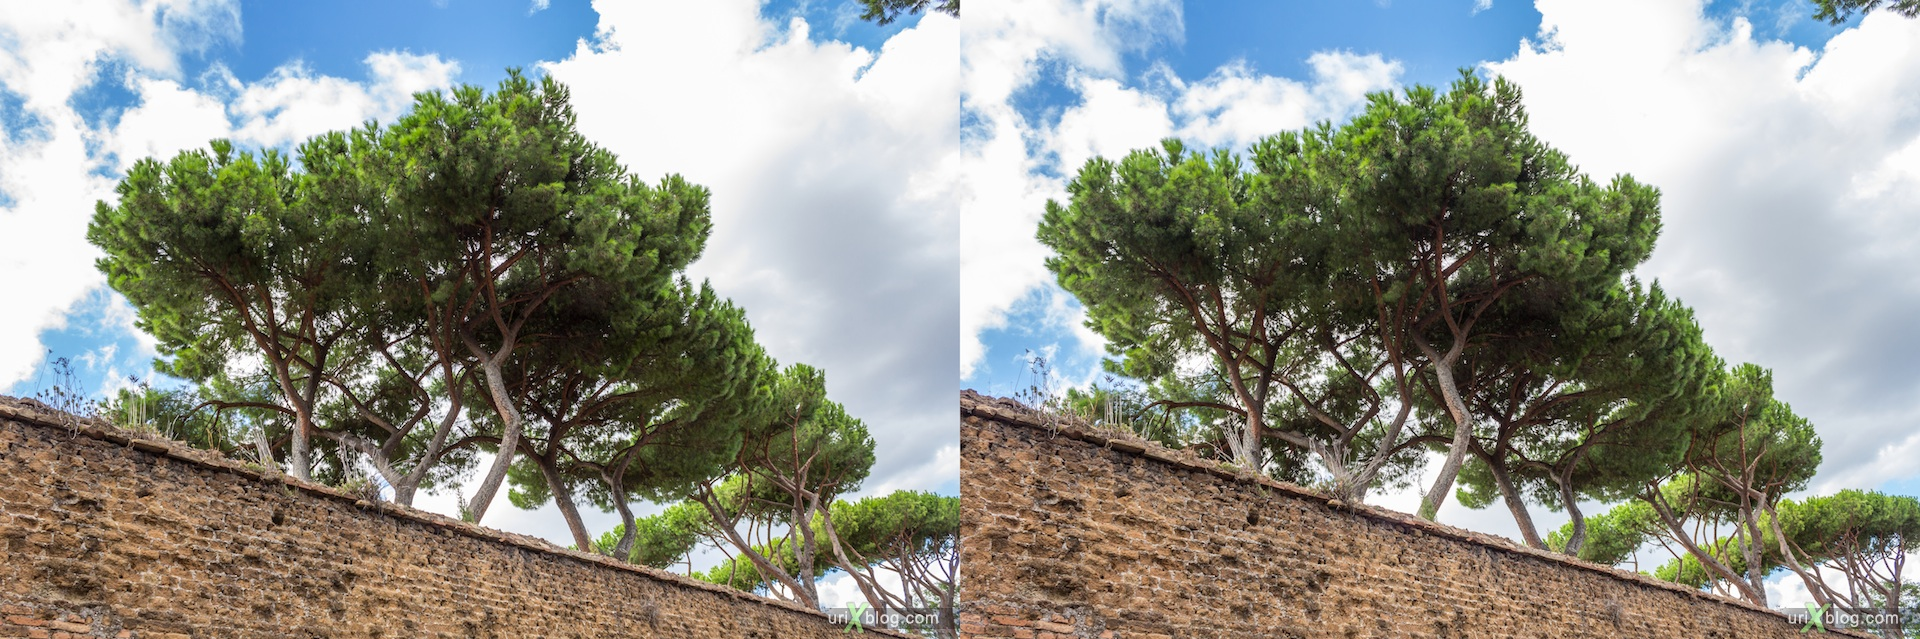 2012, fence, garden of the oranges, Savello park, basilica of Santa Sabina, Rome, Italy, Europe, 3D, stereo pair, cross-eyed, crossview, cross view stereo pair